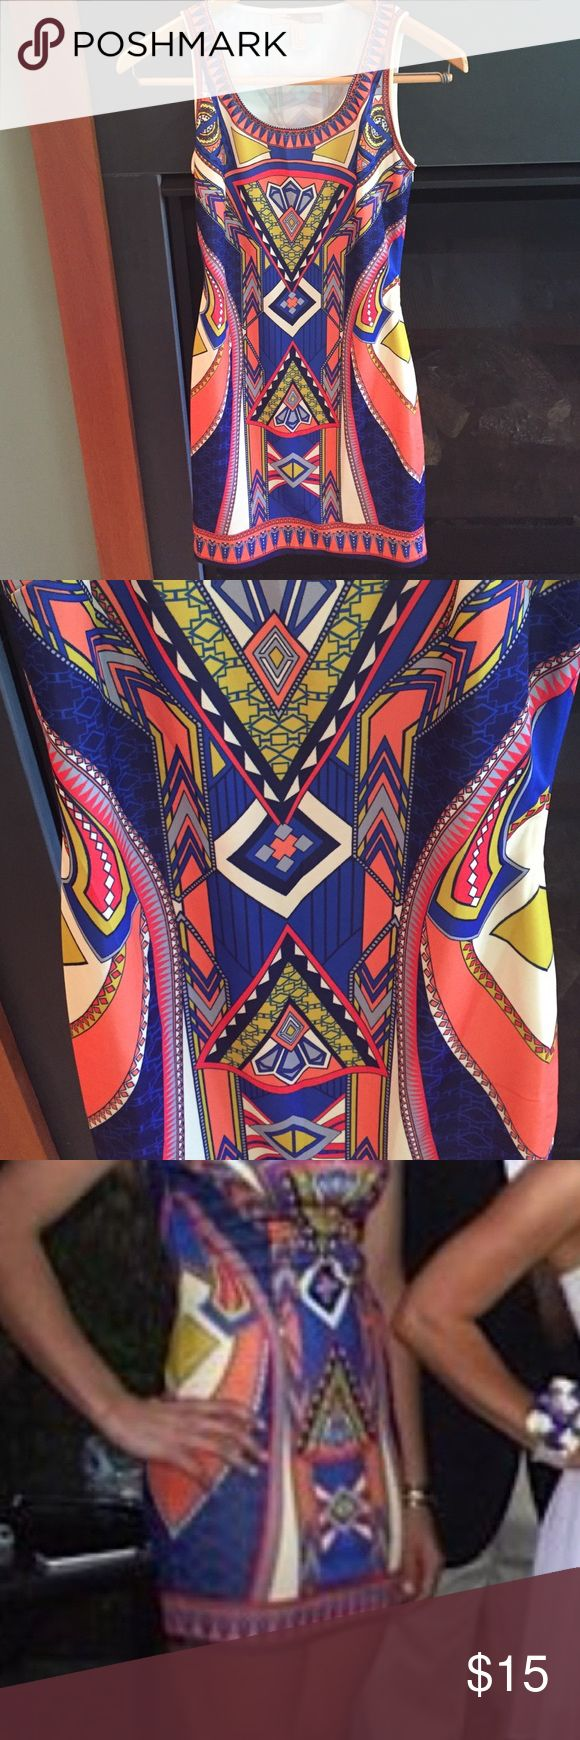 Bright patterned bodycon dress Coral and royal blue bodycon dress in fun geometric pattern by forever21. Been worn once! Forever 21 Dresses Mini